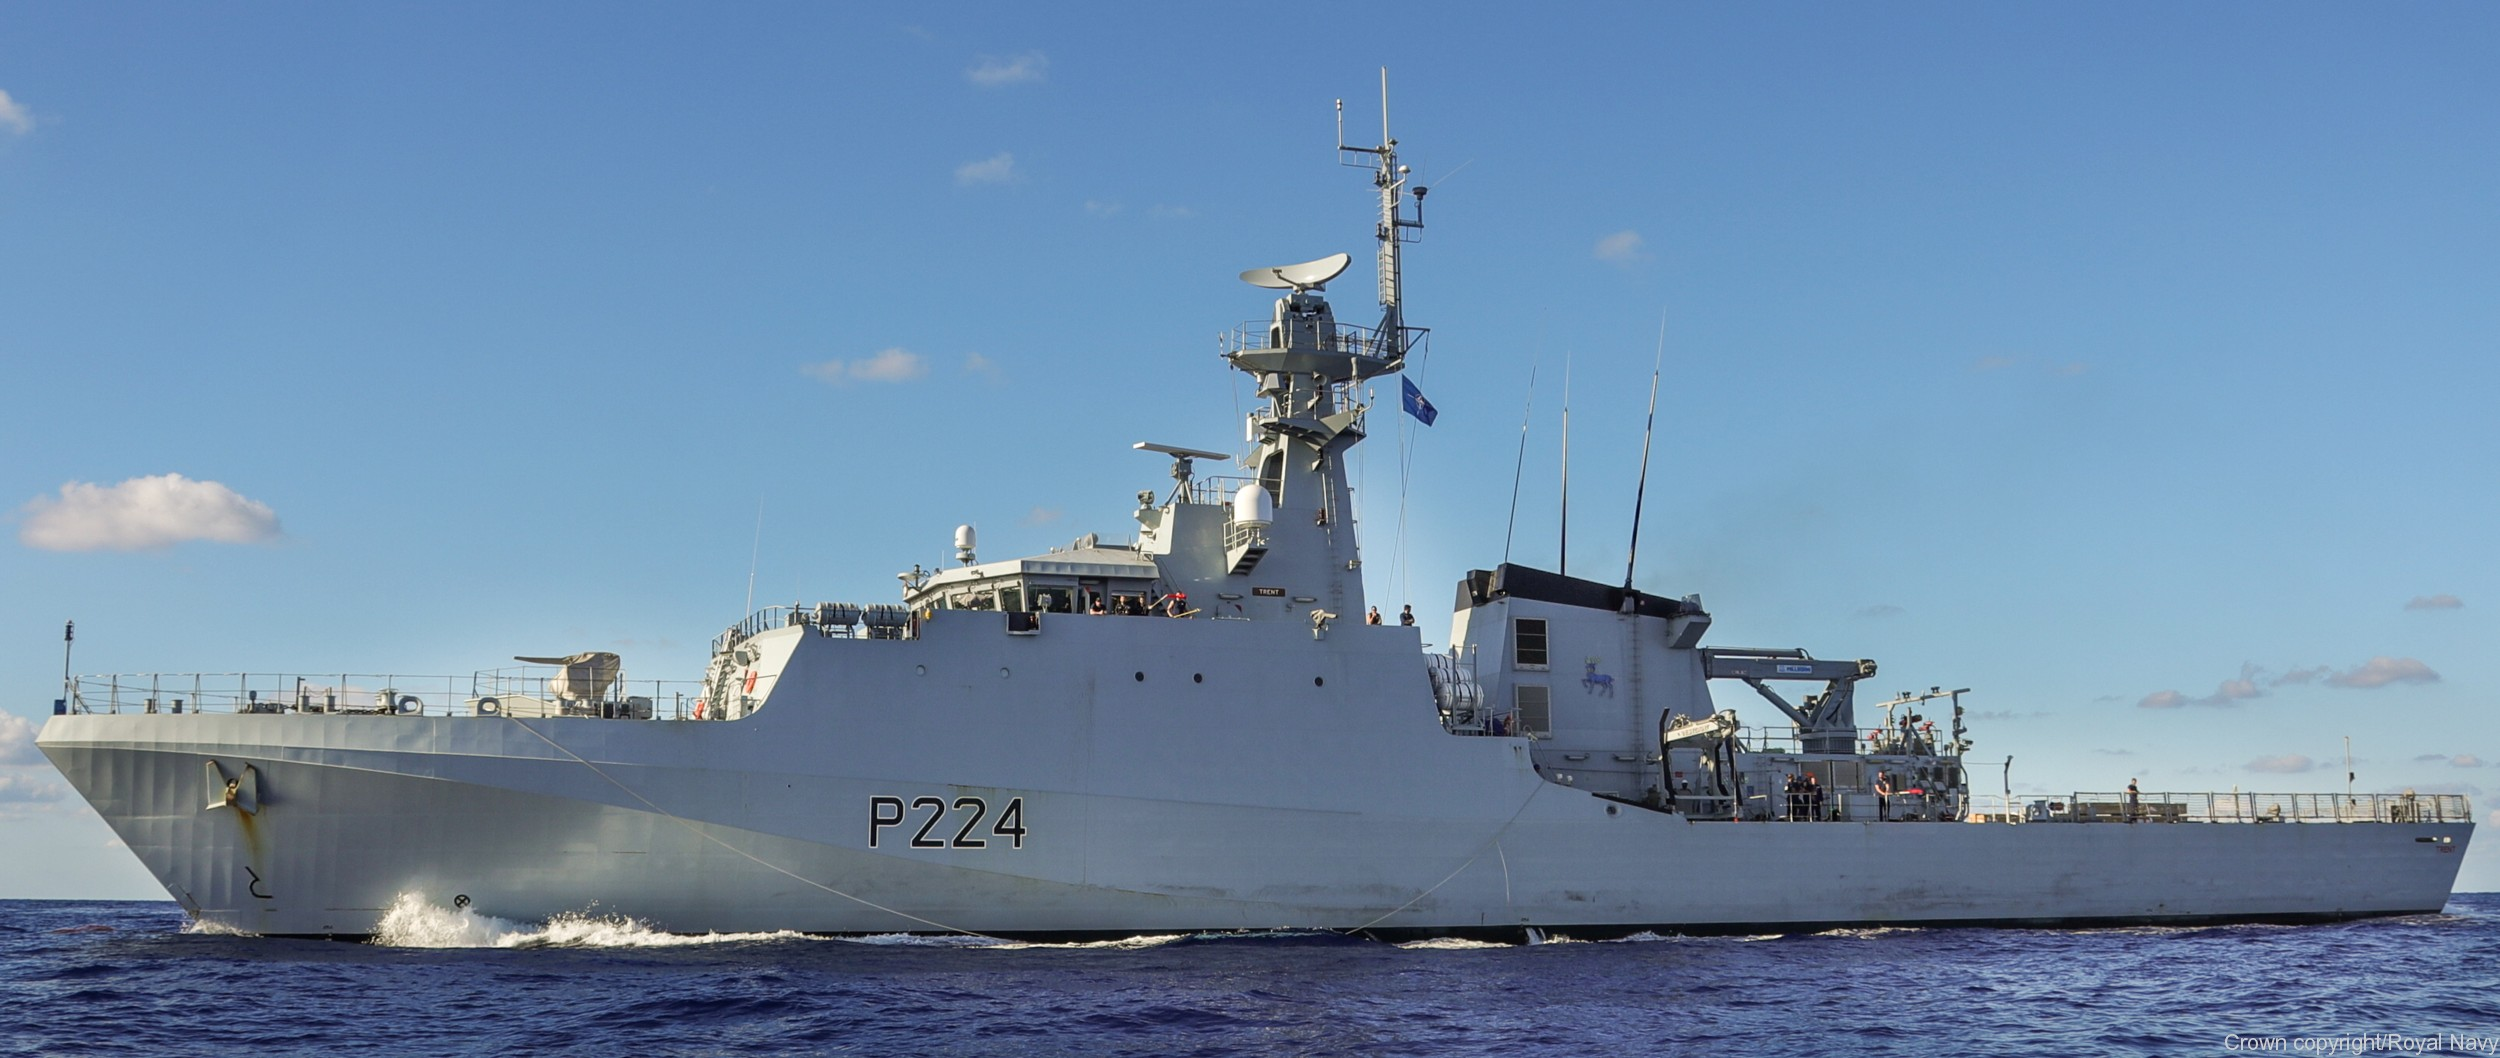 https://www.seaforces.org/marint/Royal-Navy/Patrol-Vessel/P224-HMS-Trent_DAT/P224-HMS-Trent-014.jpg